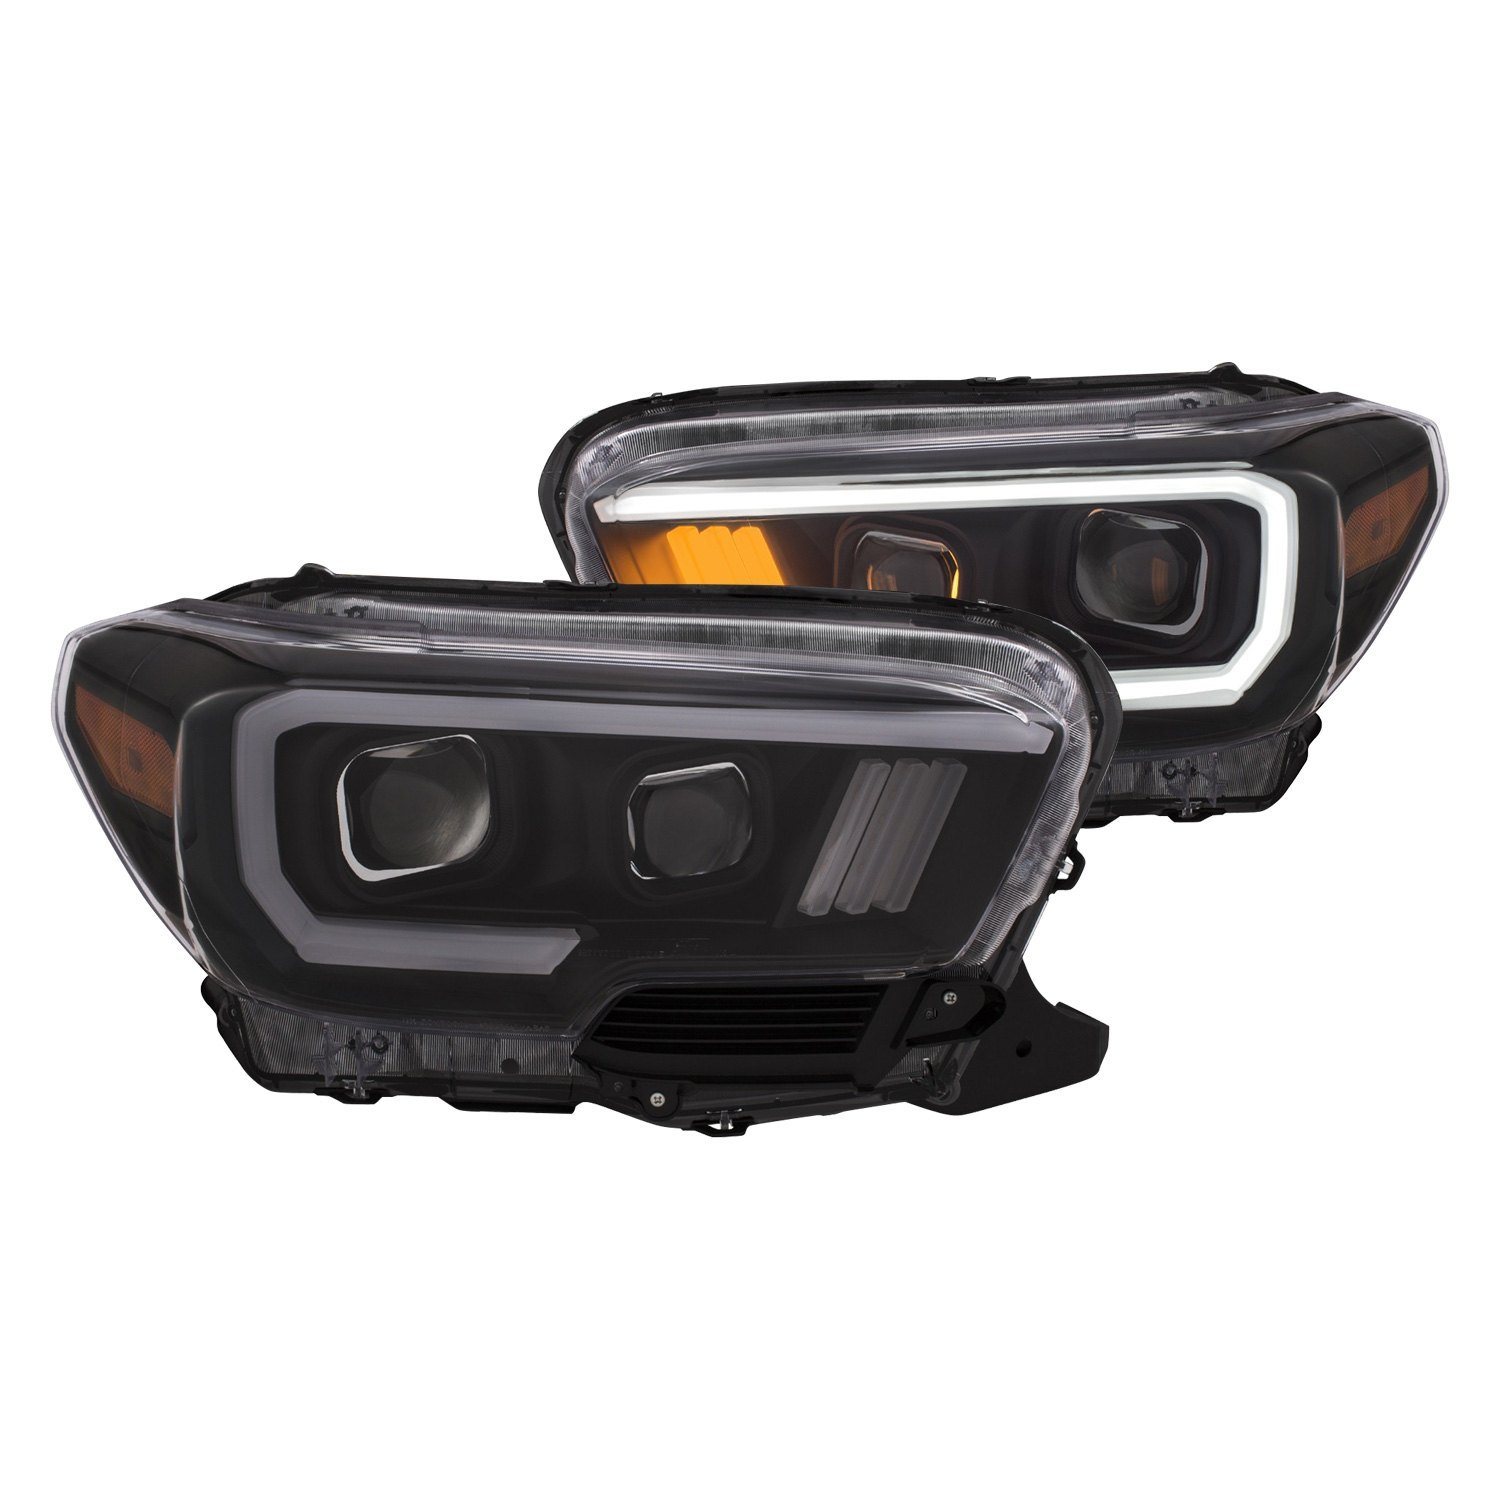 Anzo black u bar projector headlights with amber led turn signals